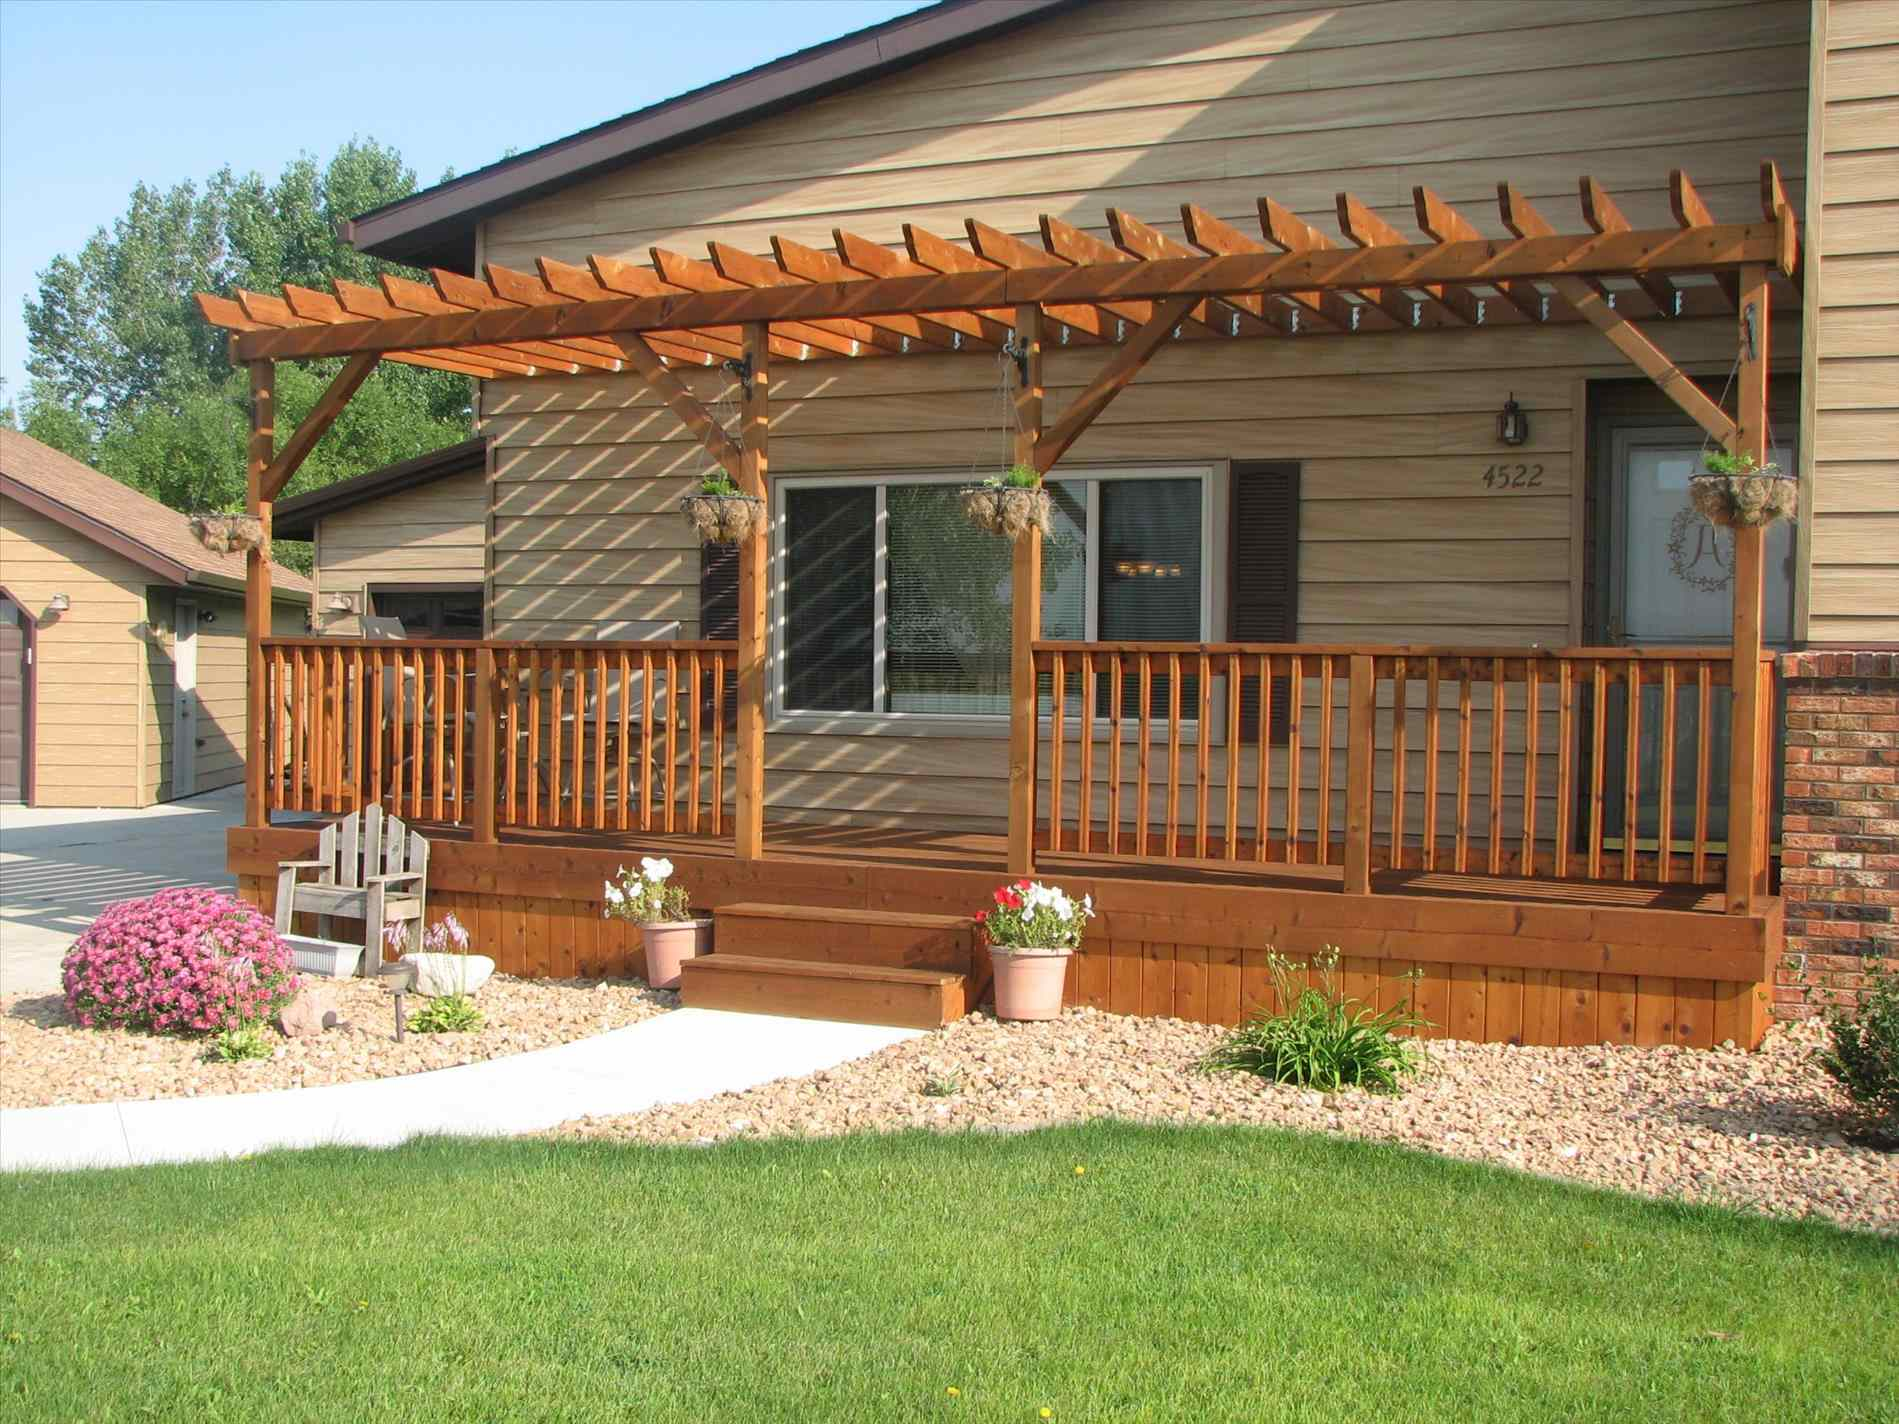 Mobile Home Porches | Pictures of Porches on Mobile Homes | Mobile Home Porches and Decks